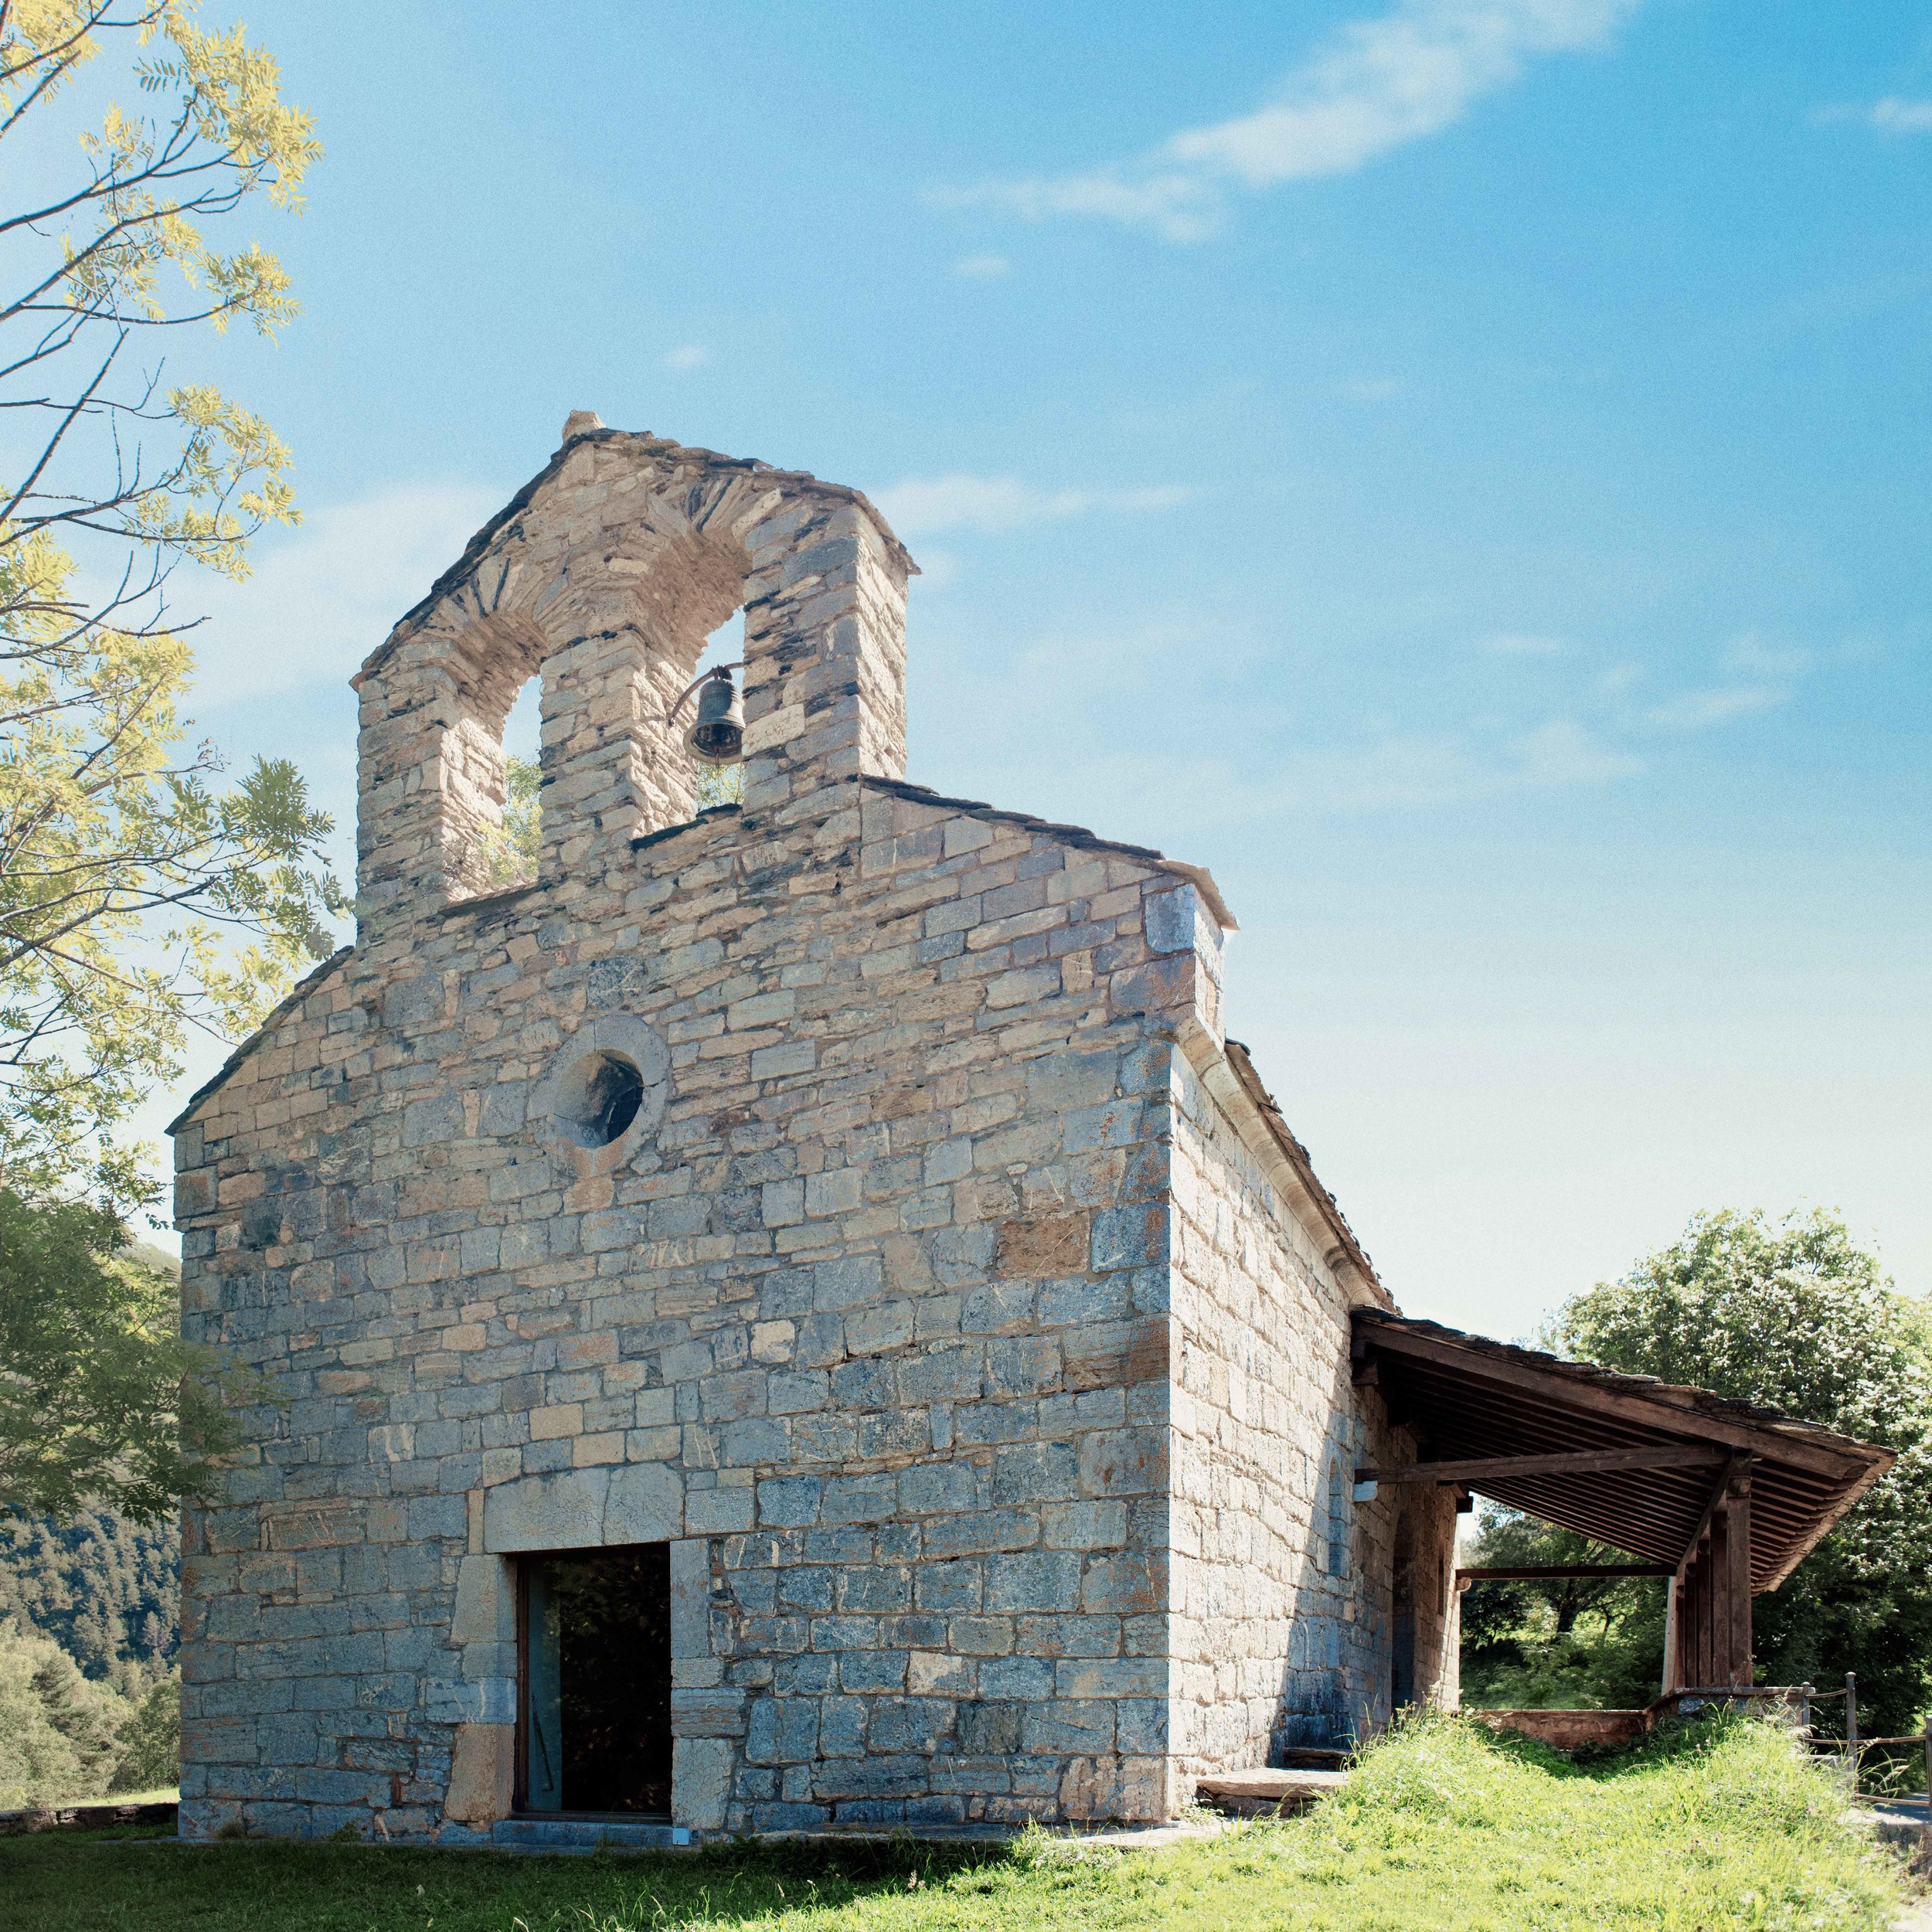 Santa Magdalena de Puigsac  This small 12th century Romanesque church is an ideal location for enjoying the views over the Serra Cavallera and recalling the distant past when it was the heart of religious activity for the inhabitants of the region.